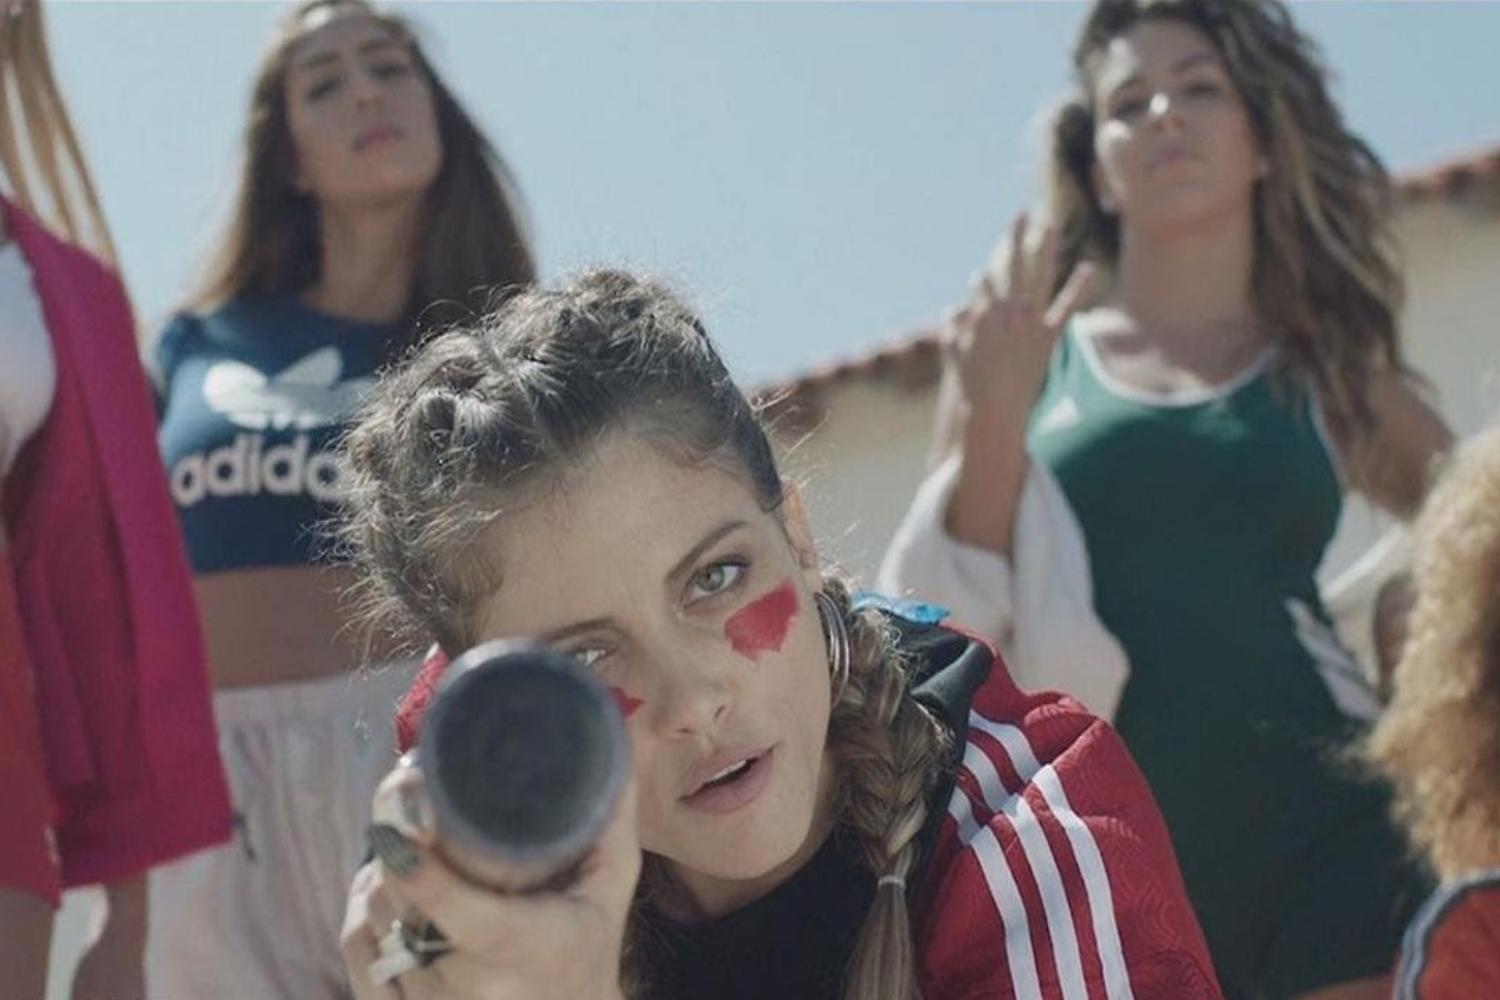 Noga Erez disrupts the peace in the video for 'Noisy'